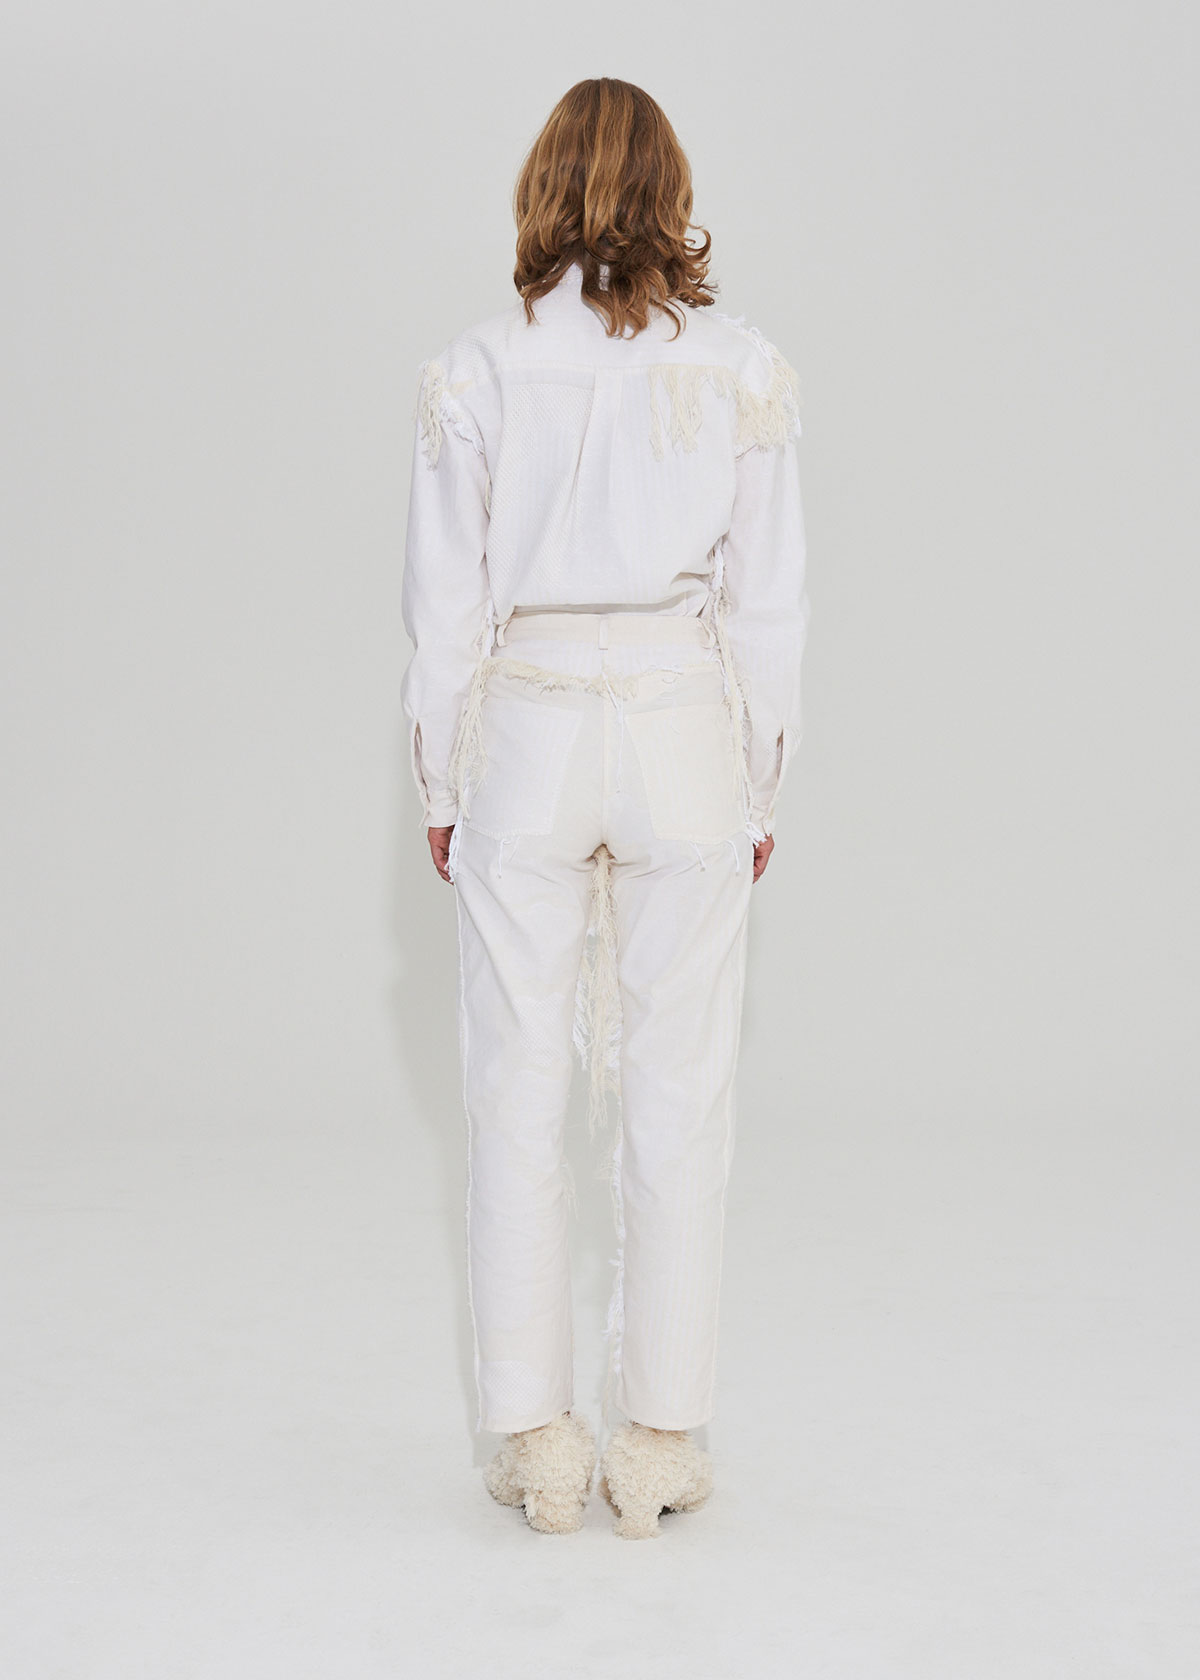 Trousers fringes on the outside - Edition 1